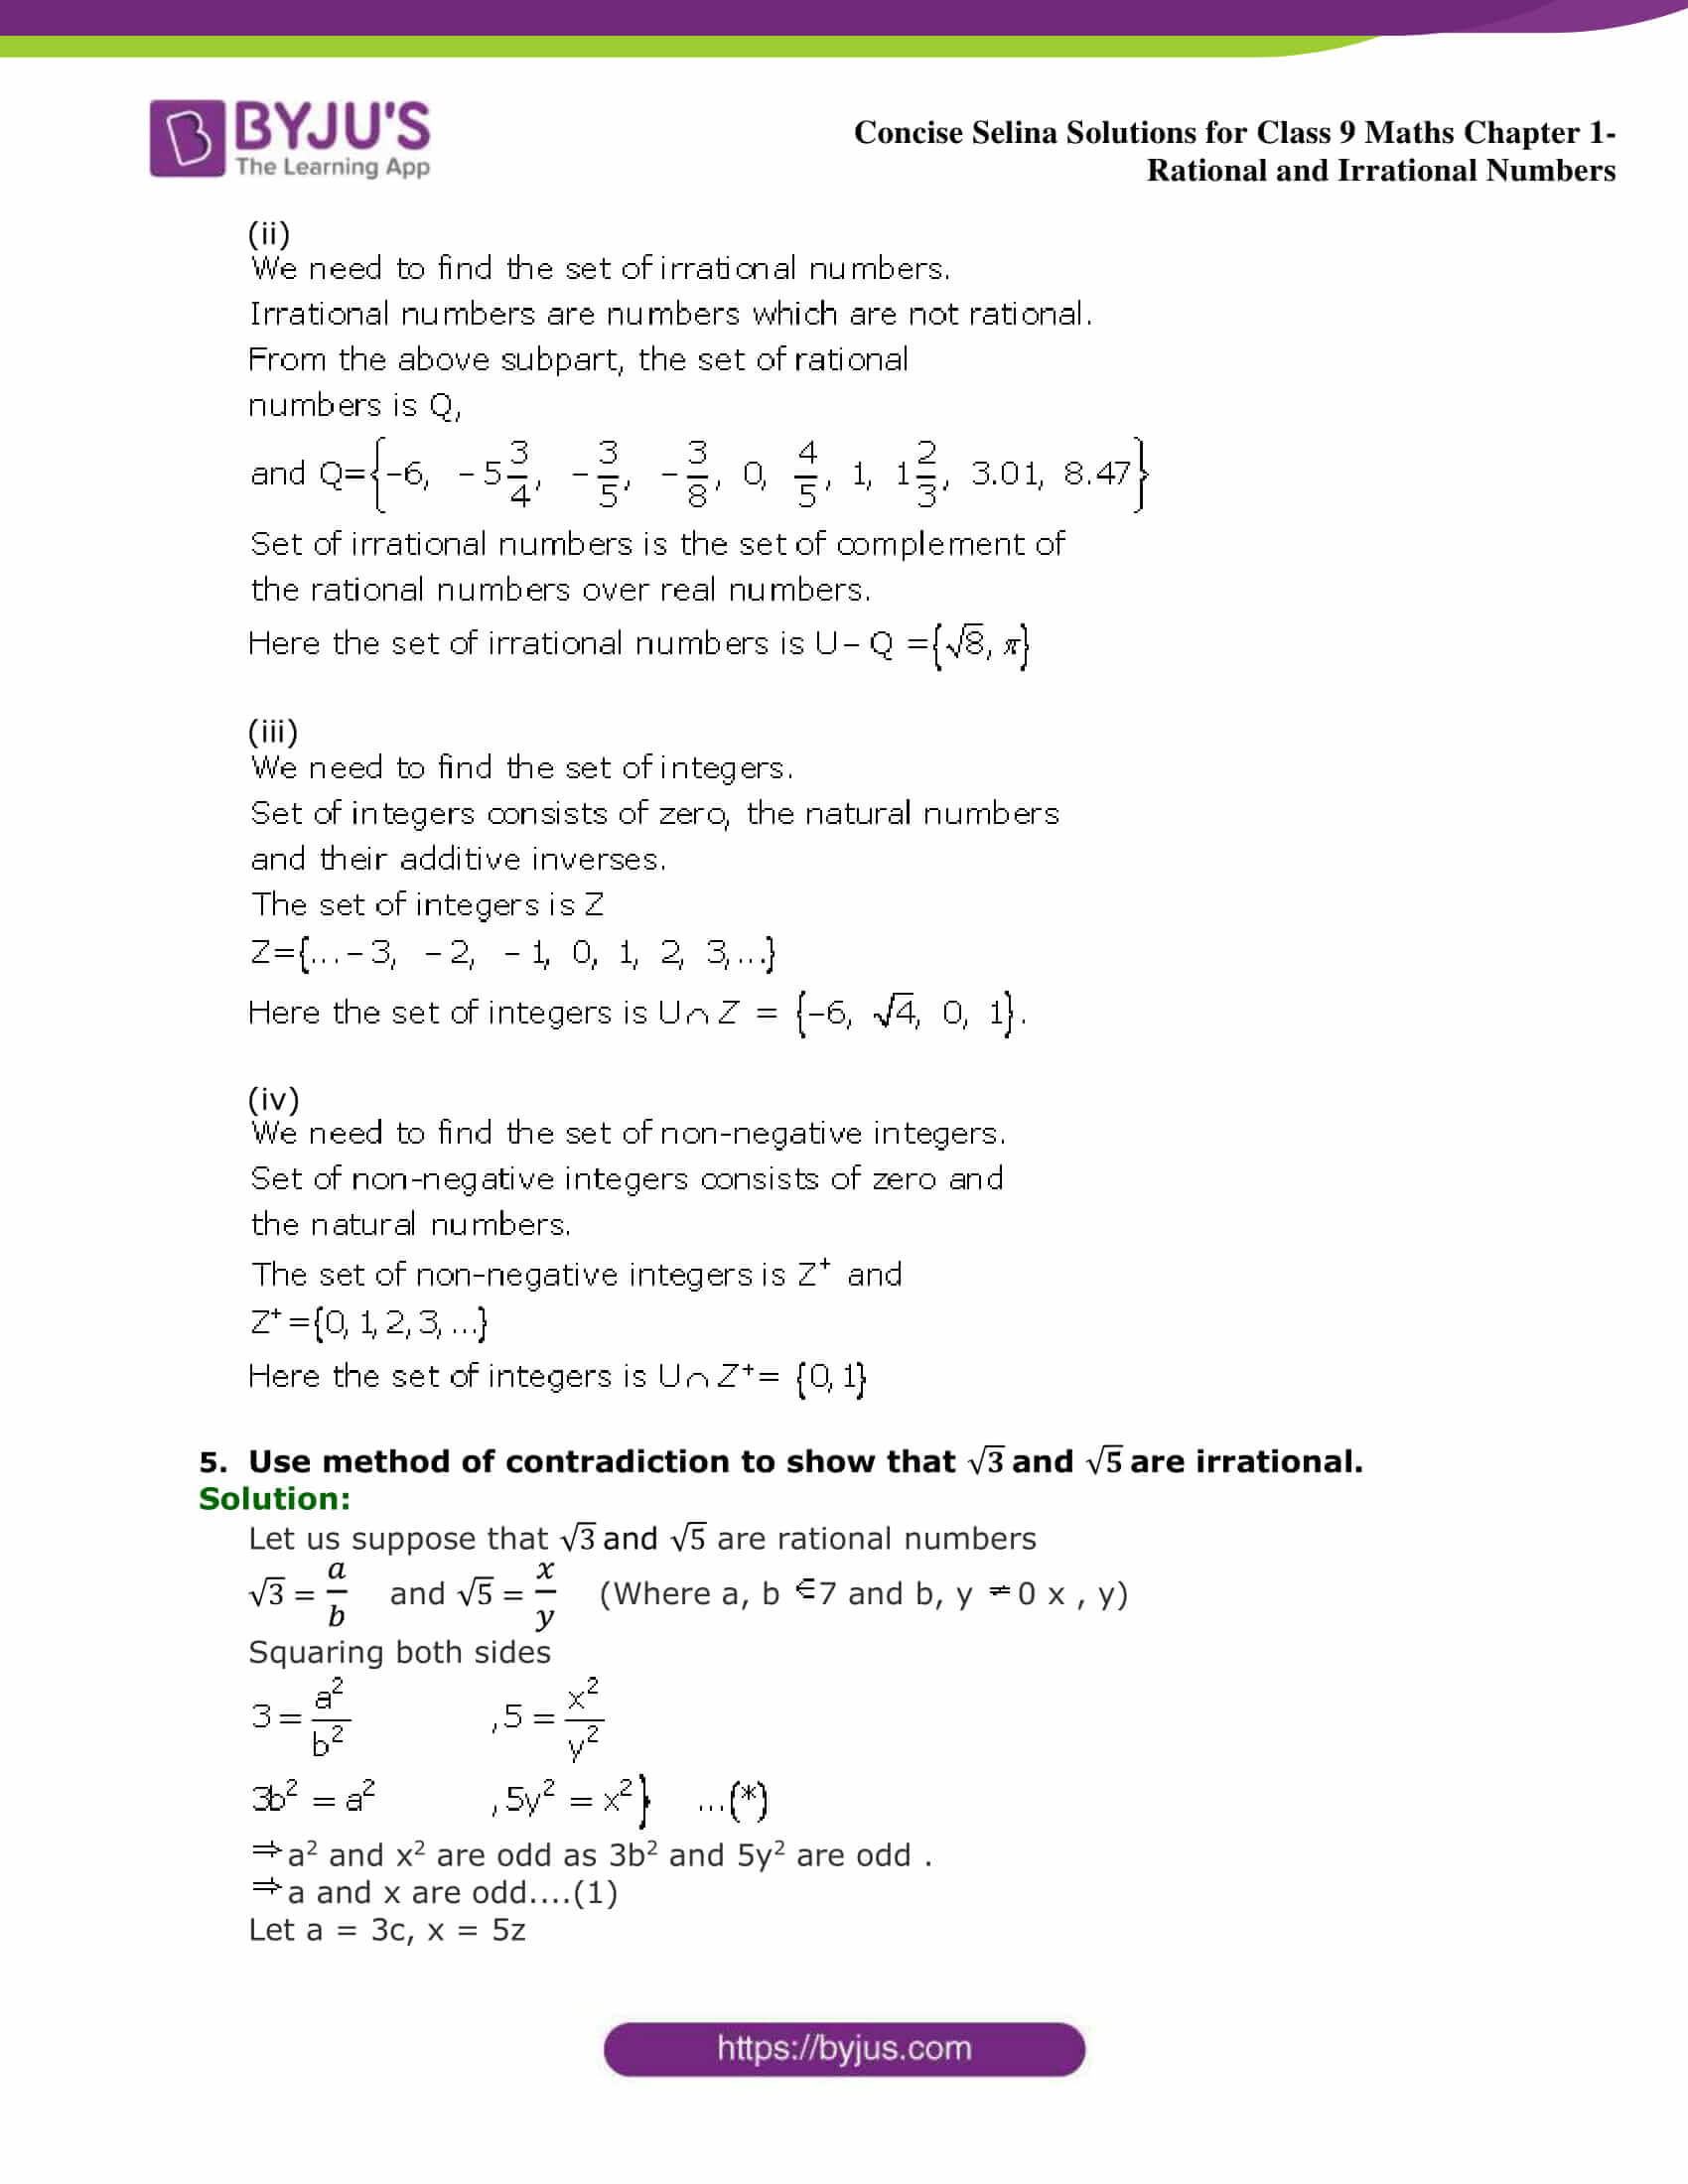 Selina Solutions Class 9 Maths Chapter 1 Rational And Irrational Numbers part 09